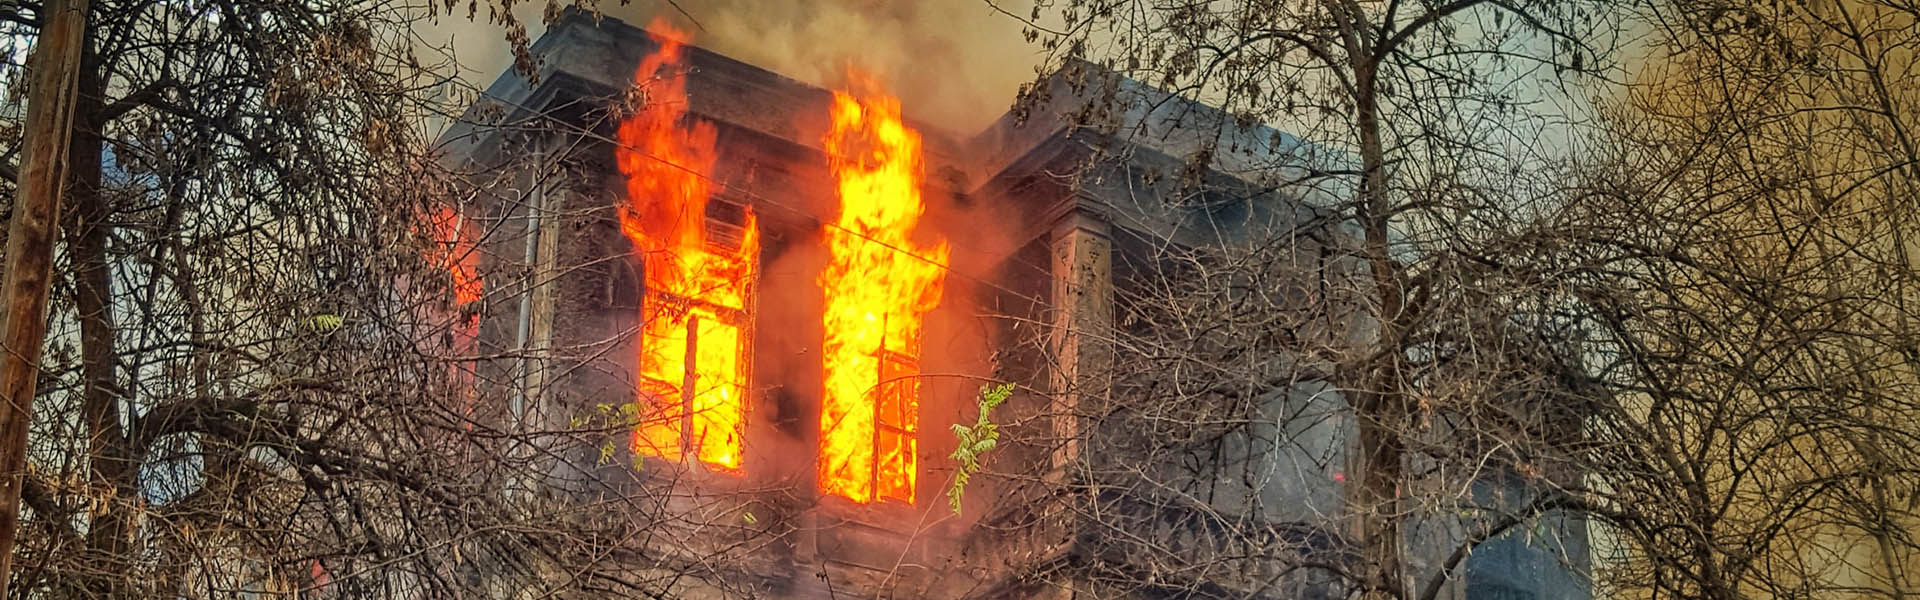 Prana FM Fire Safety tips